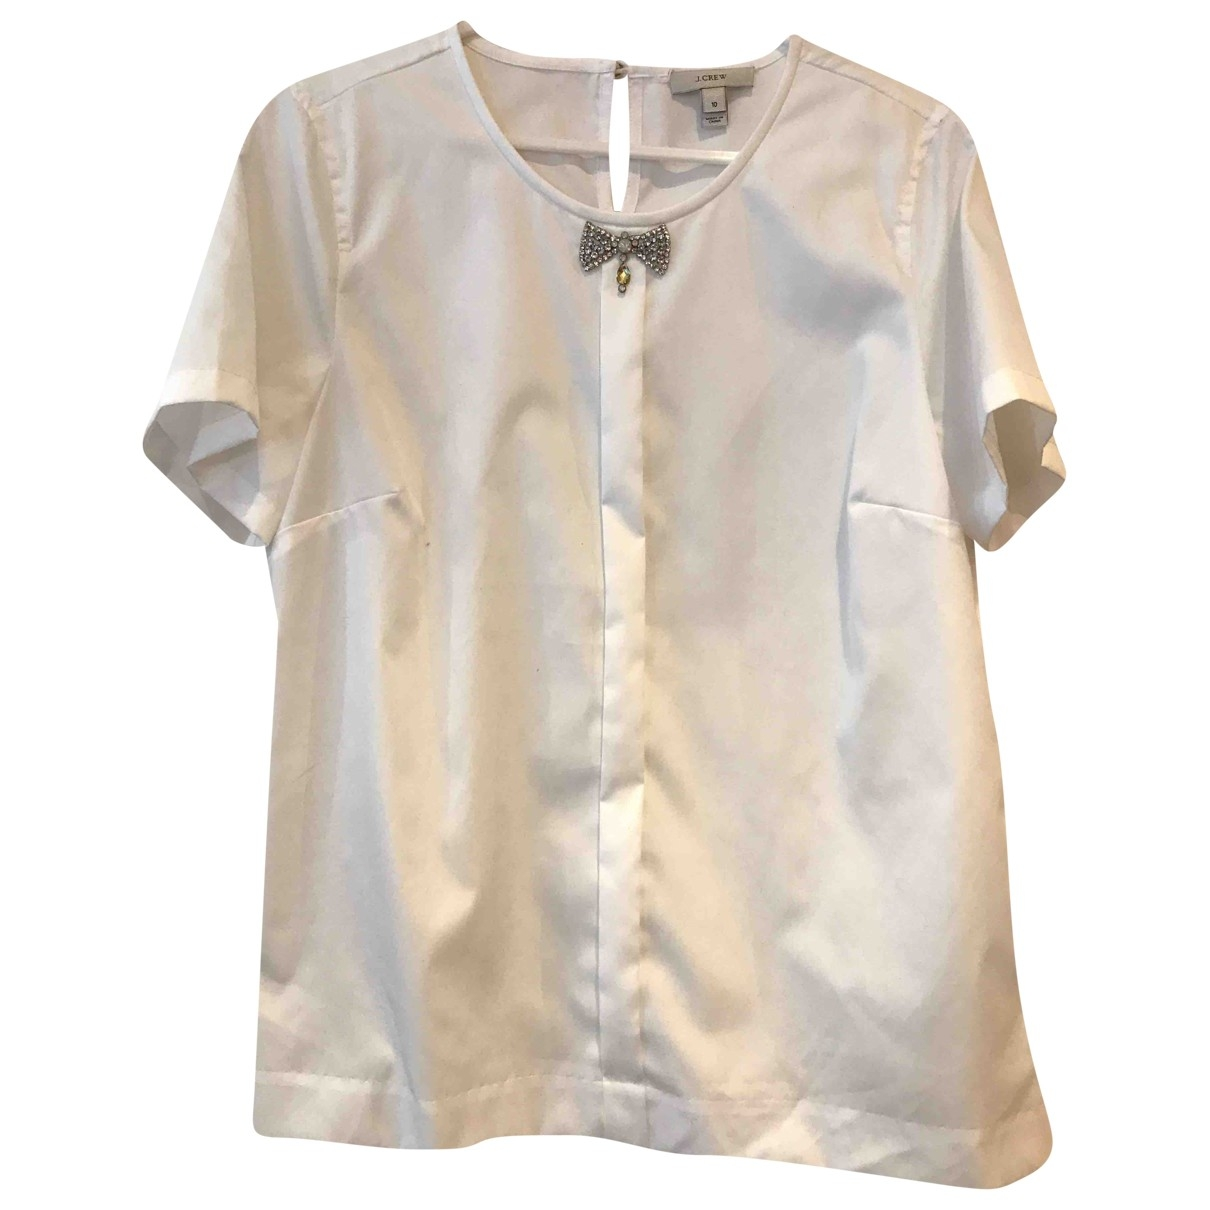 J.crew \N White Cotton  top for Women 10 US